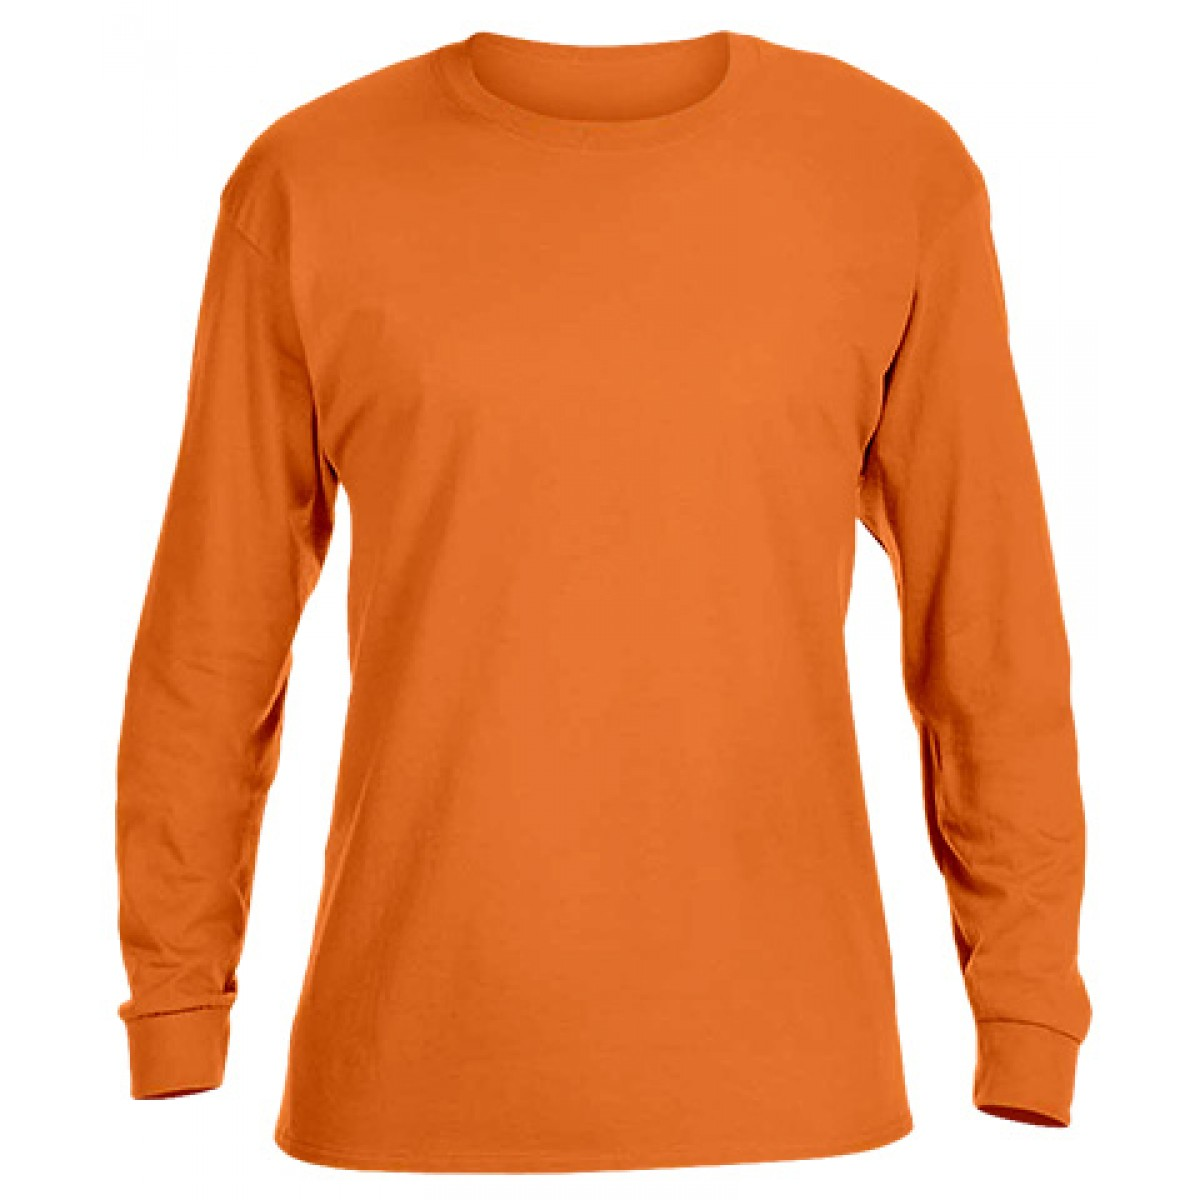 Basic Long Sleeve Crew Neck -Orange-XL